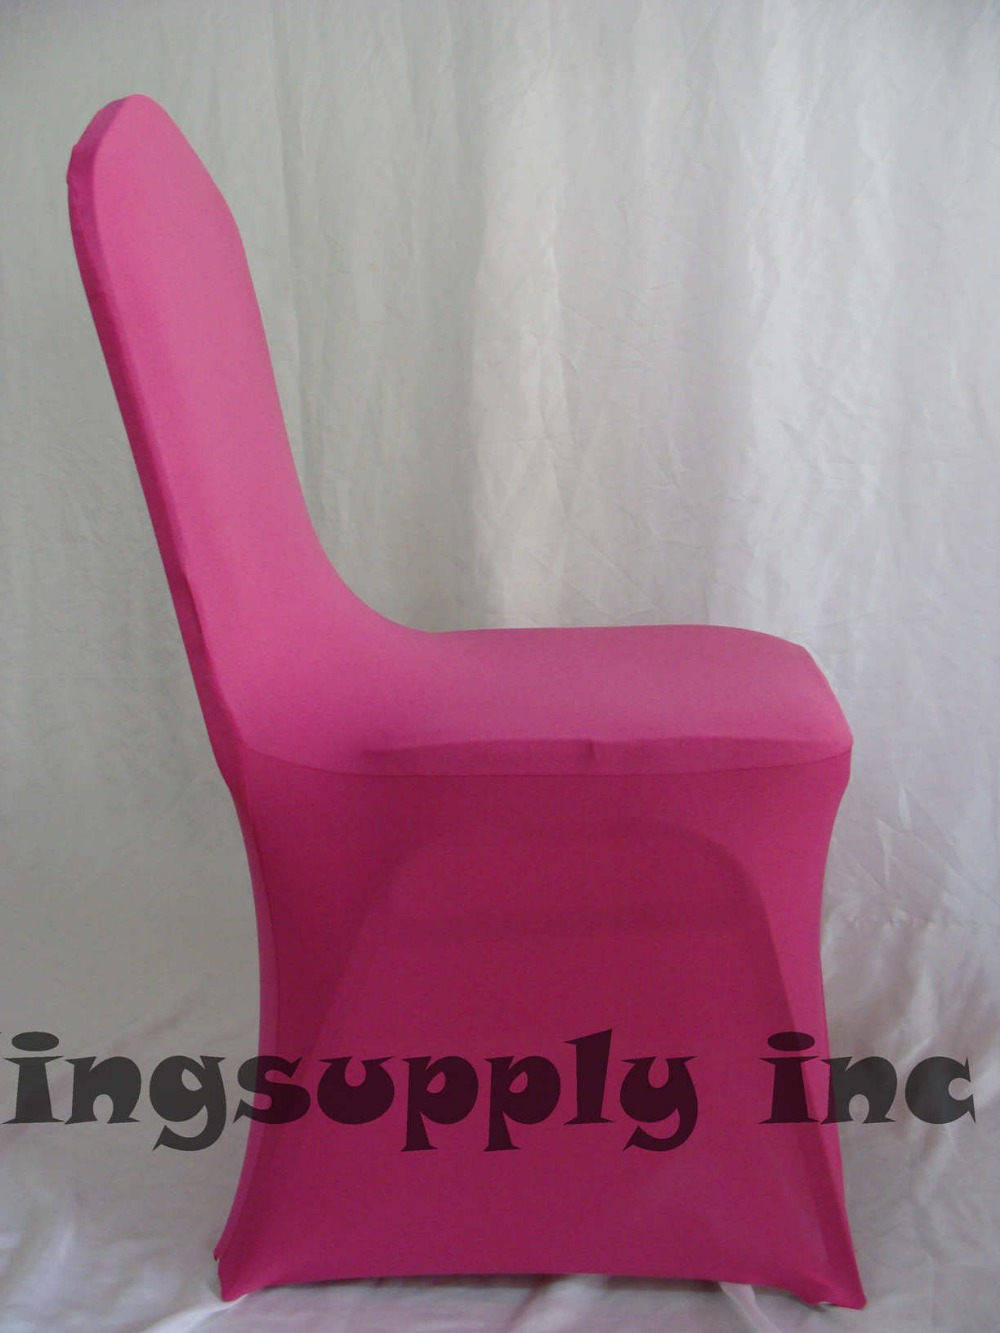 Aliexpress Buy 100 Premium Fuschia Spandex Polyester Chair Covers for W